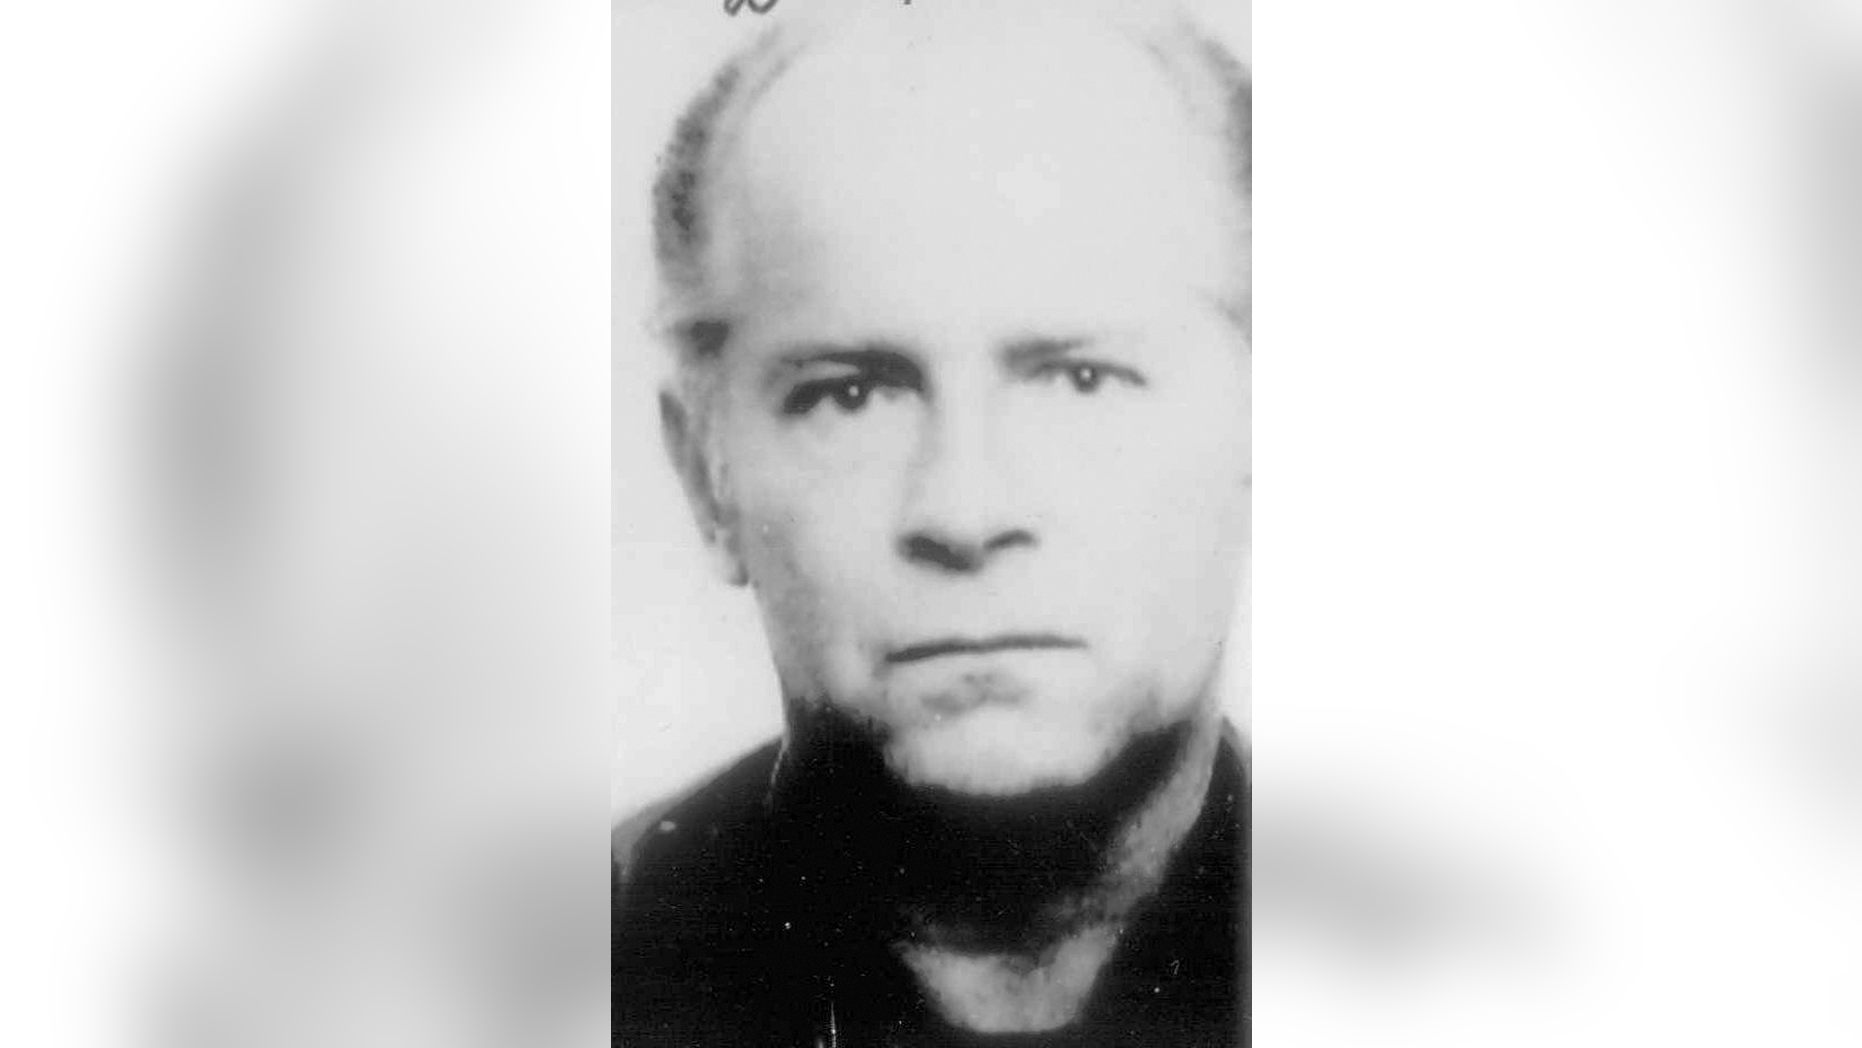 """FILE - This 1986 FBI file photos show New England mobster James """"Whitey"""" Bulger. Officials with the Federal Bureau of Prisons said Bulger died Tuesday, Oct. 30, 2018, in a West Virginia prison after being sentenced in 2013 in Boston to spend the rest of his life in prison. (FBI via AP, File)"""